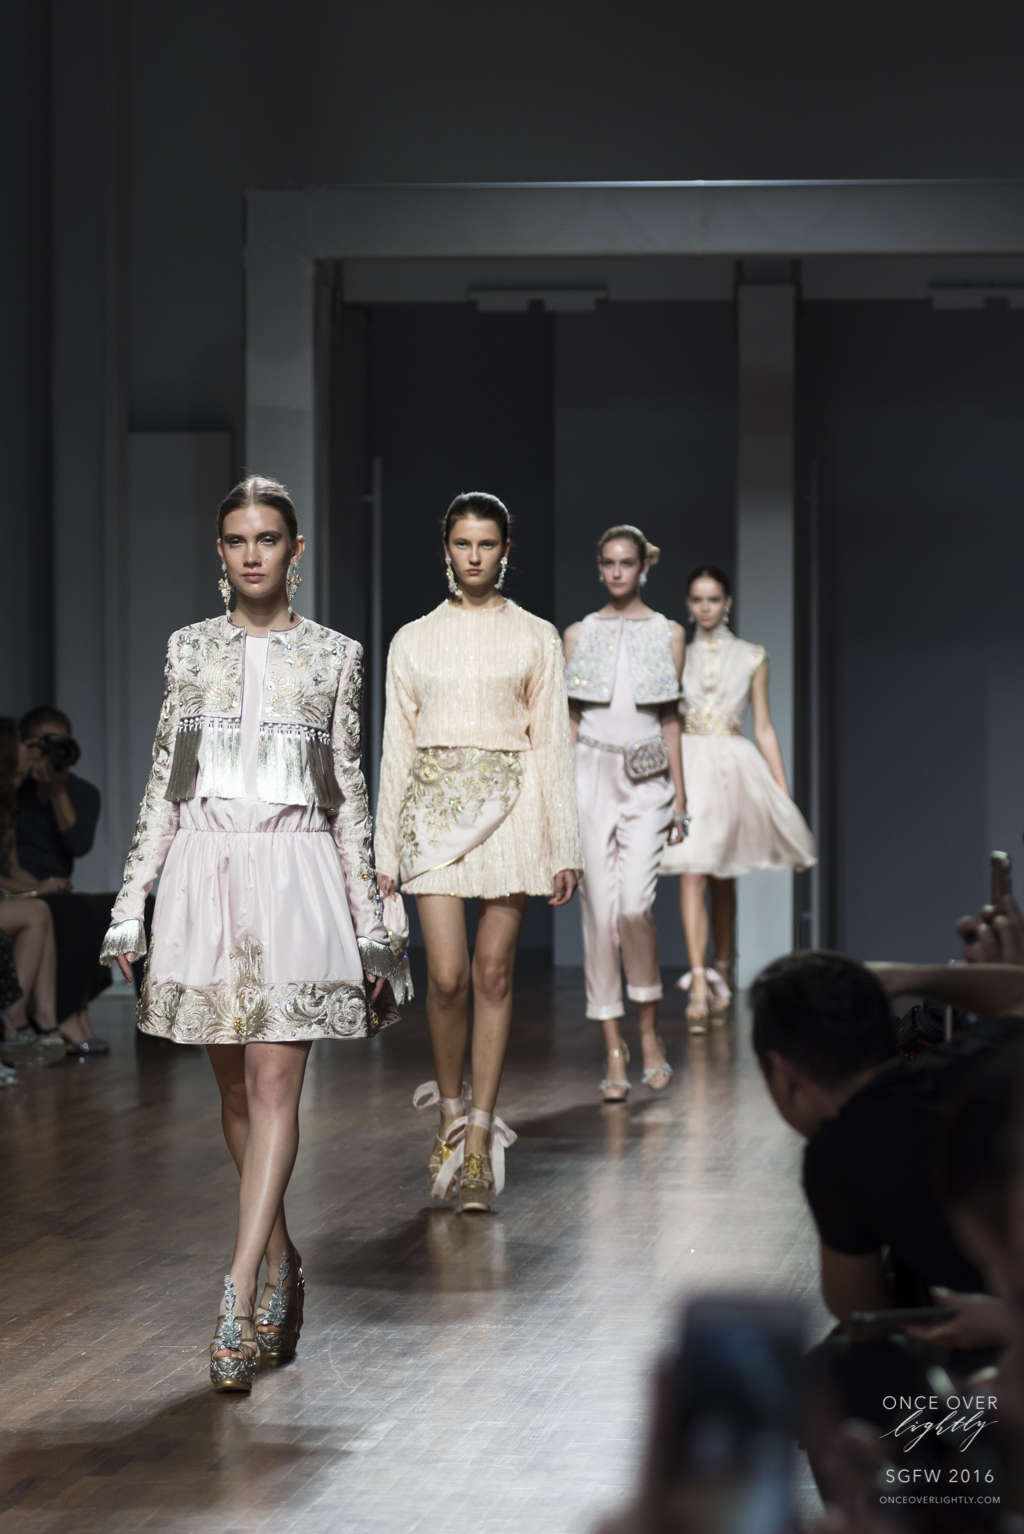 onceoverlightly sgfw 2016 guo pei